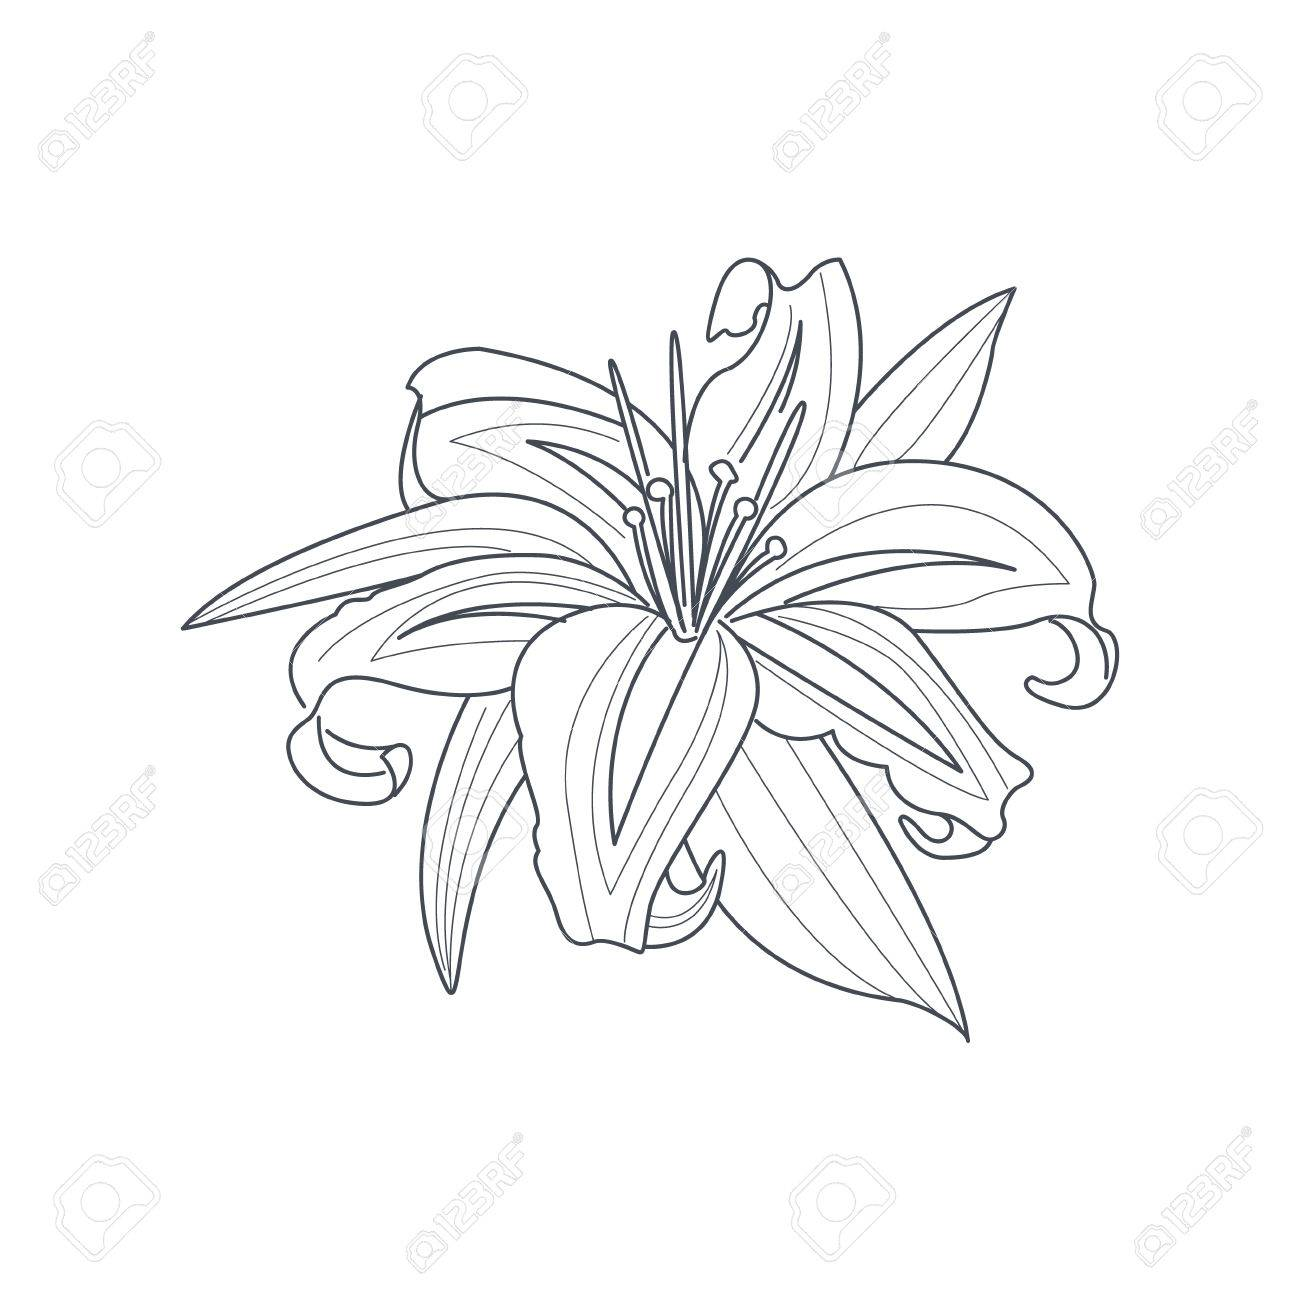 1300x1300 Lily Flower Monochrome Drawing For Coloring Book Hand Drawn Vector